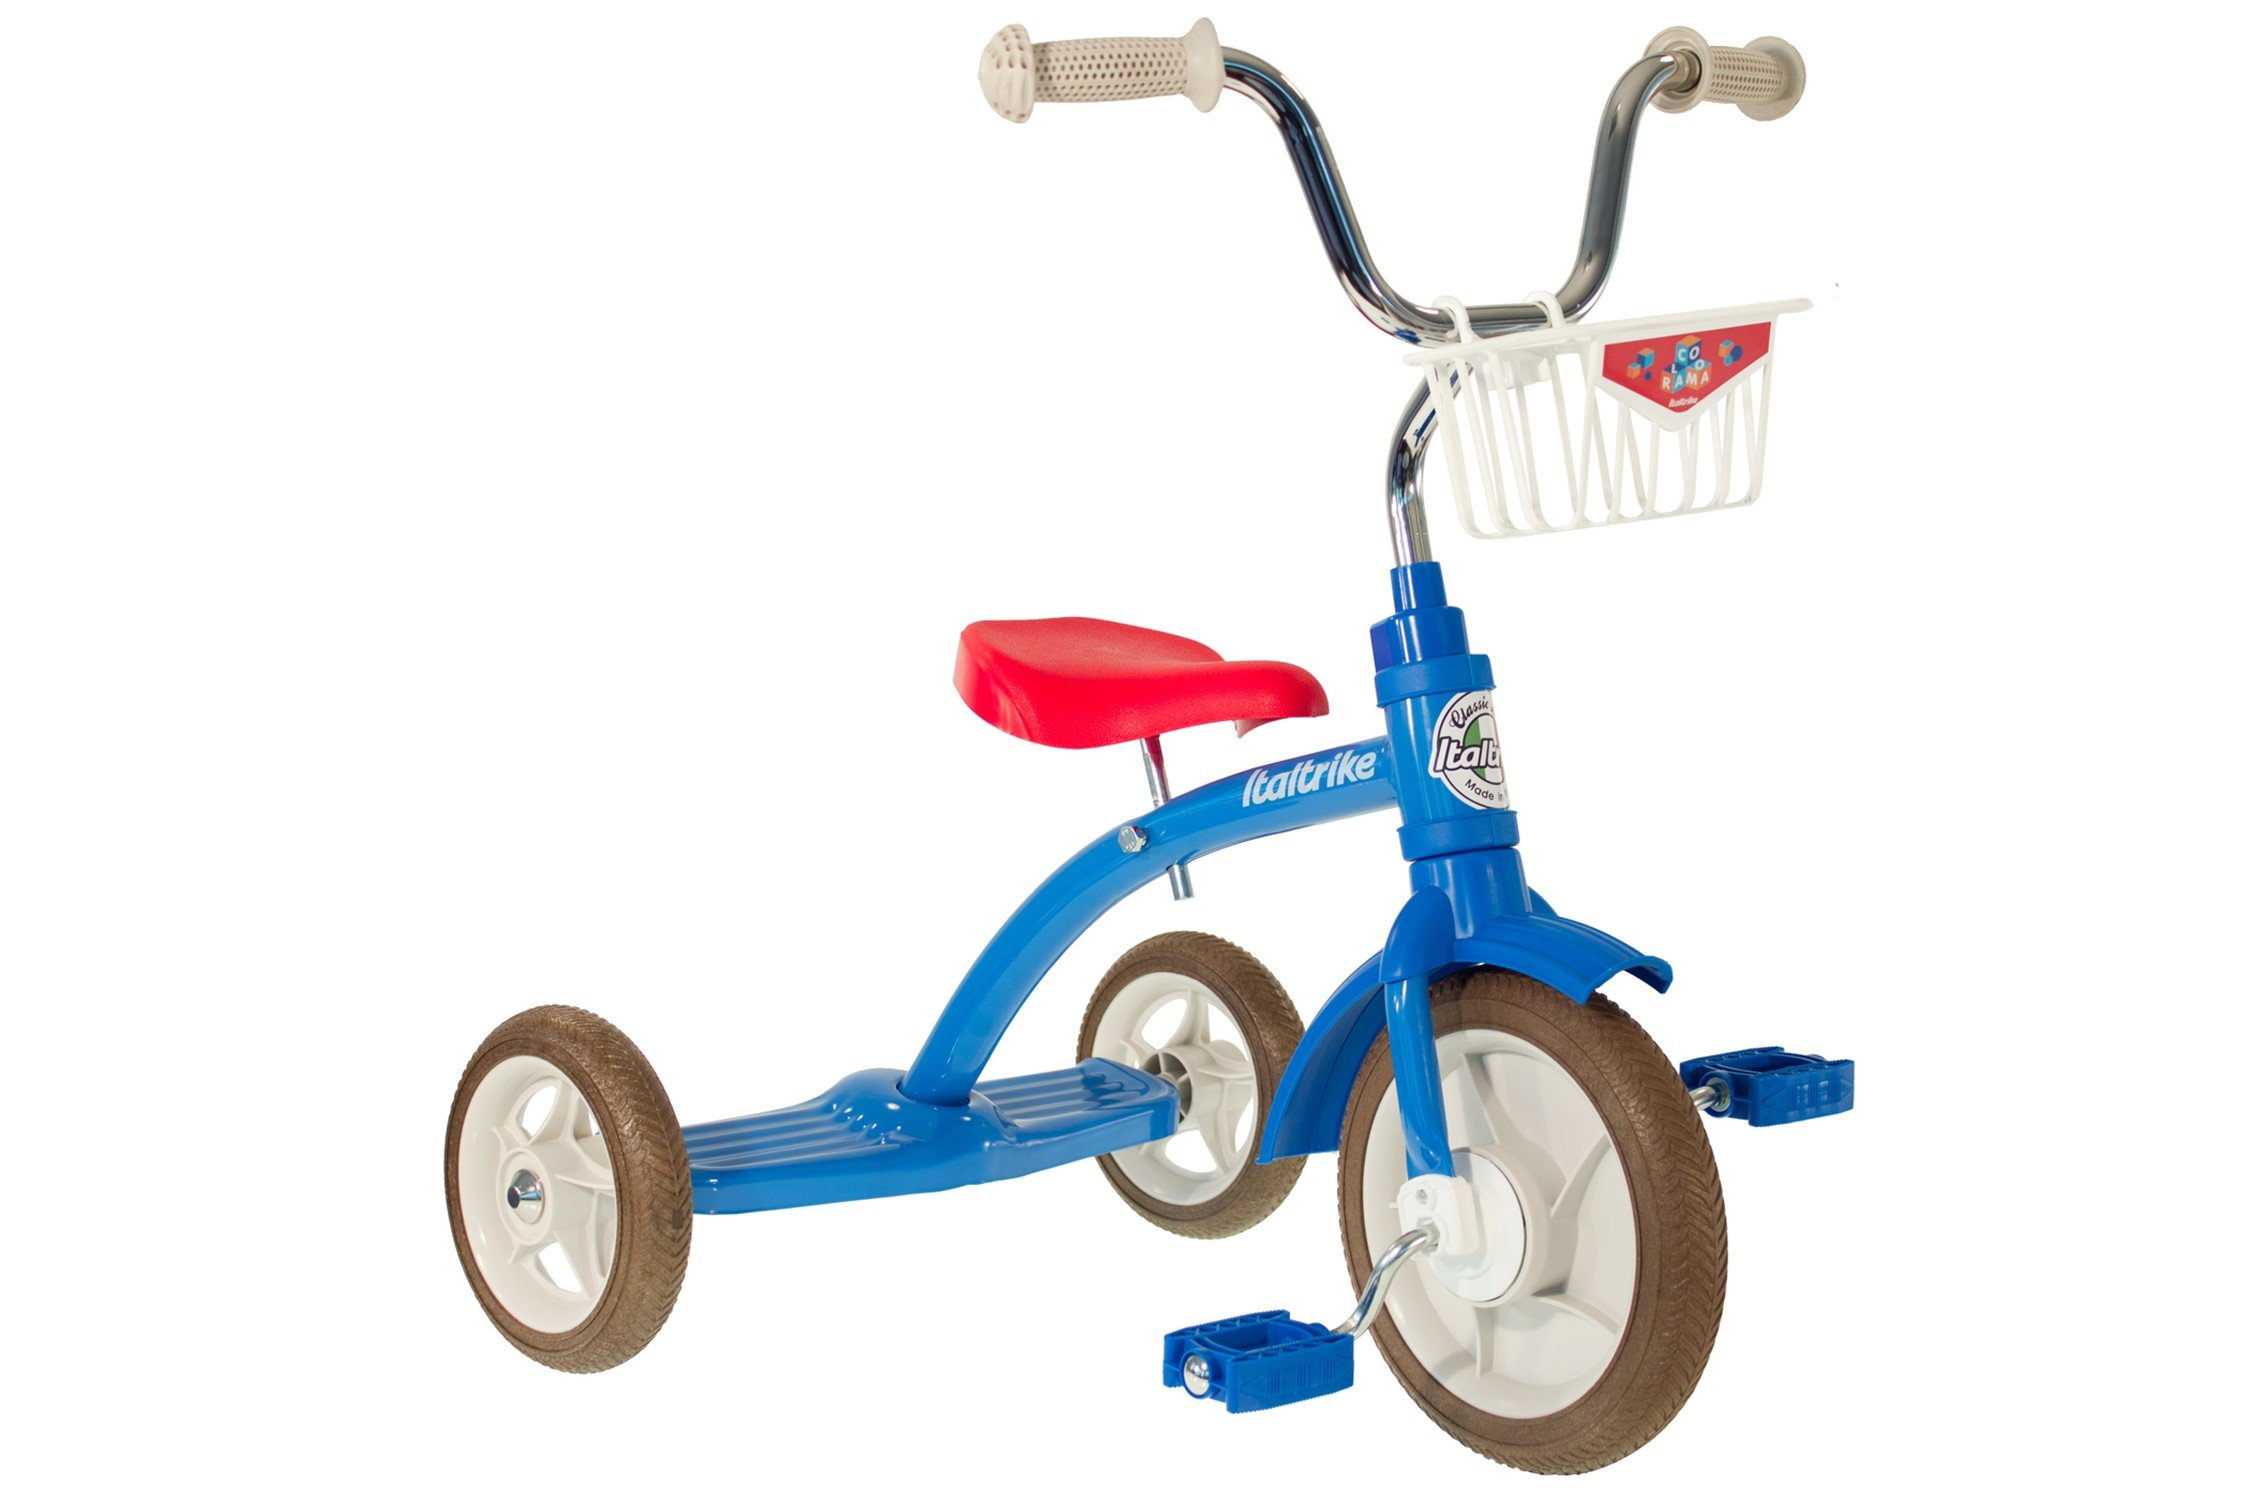 Italtrike Super Lucy Colorama Tricycle